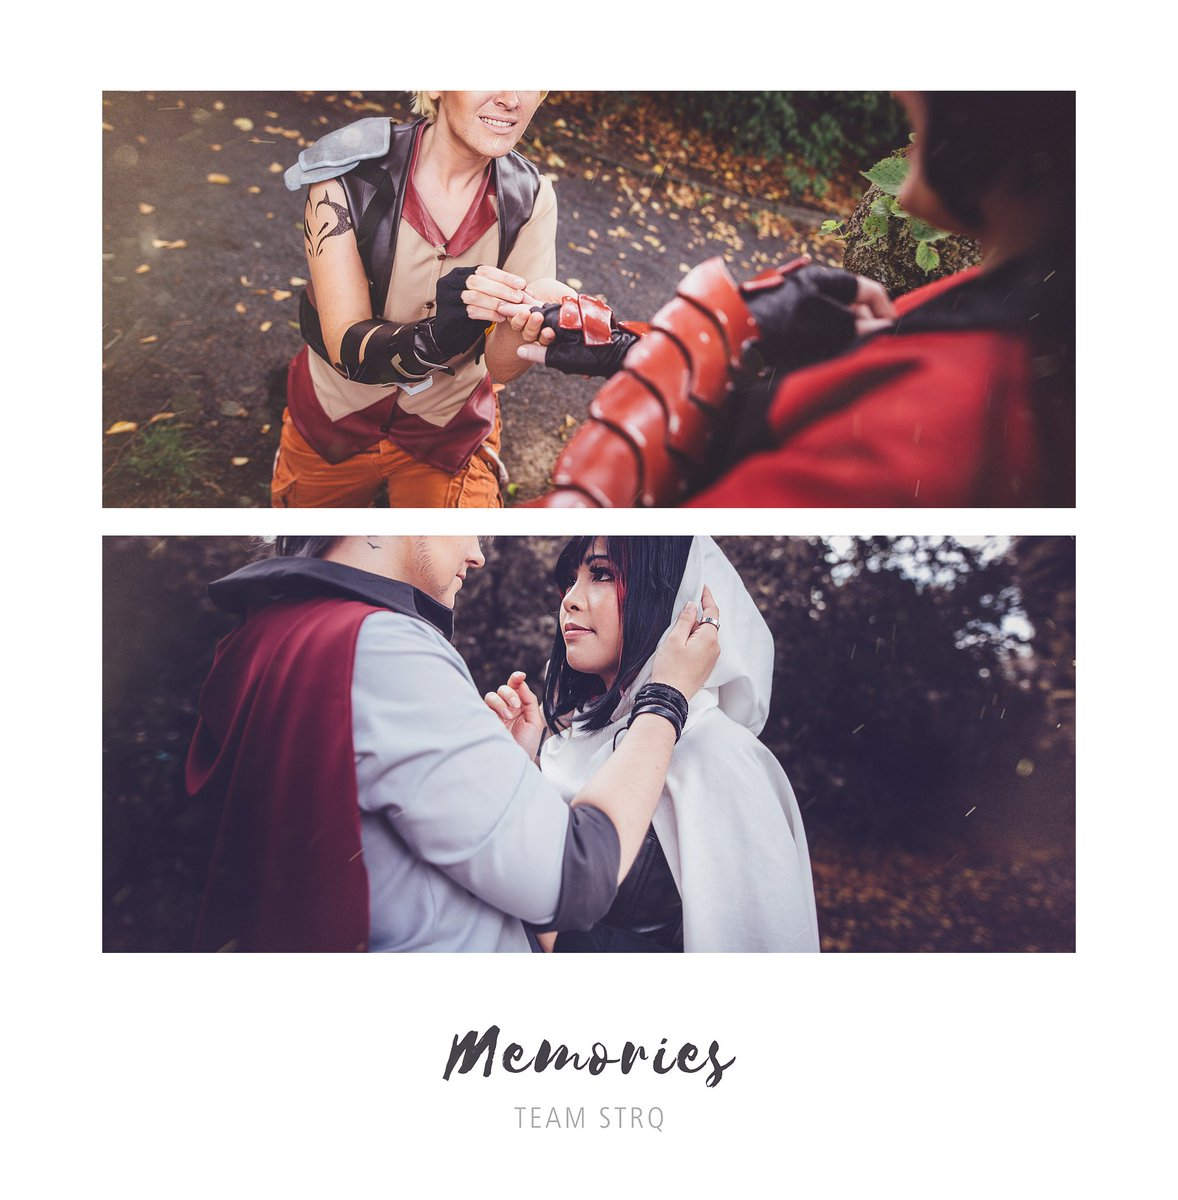 &quot;No matter how much suffering you went through you never wanted to let go of those memories.&quot; — #TeamSTRQ of #RWBY // preview   @downpourin - cosplays are selfmade  #SummerRose is @kazenary #TaiyangXiaoLong is @LadyCRME #RavenBranwen is @NekoBlablaa #QrowBranwen is @Tsuki_Nova<br>http://pic.twitter.com/5pjKzcEXWx